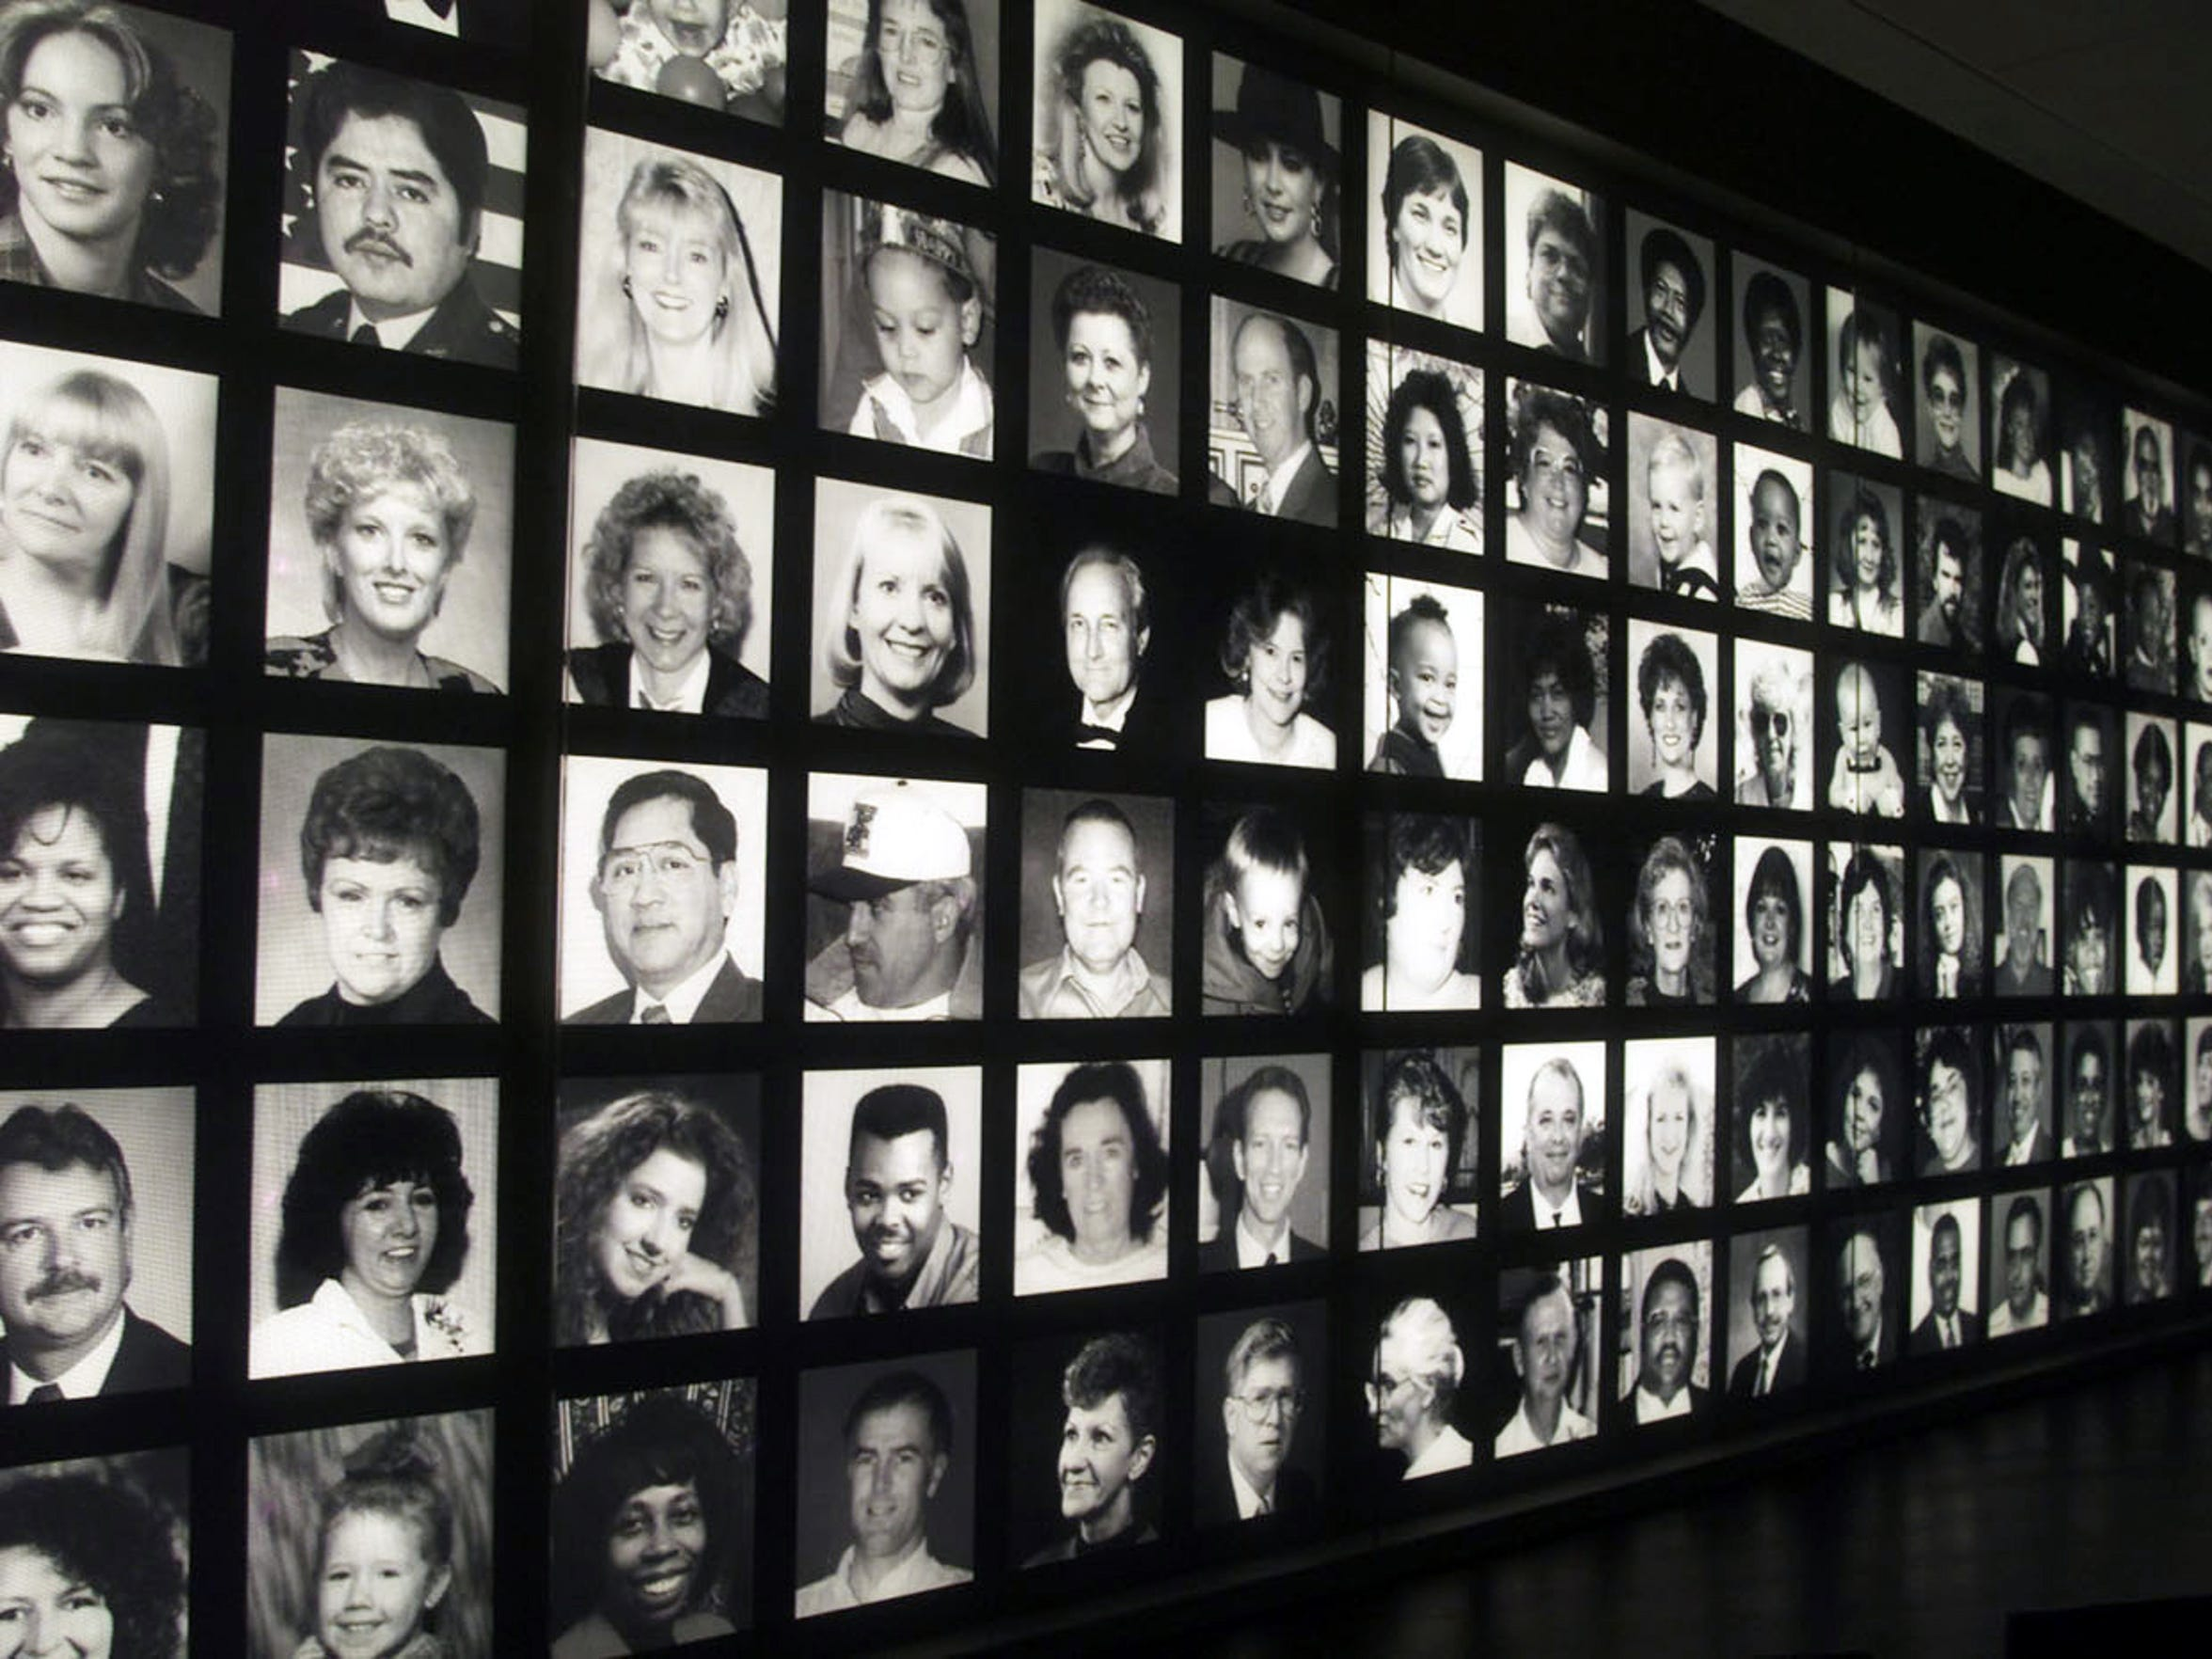 A photo of the Oklahoma City National Memorial, where visitors are greeted with the faces of the 168 people killed in the bombing of the Alfred P. Murrah Federal Building in Oklahoma City as they enter the museum.